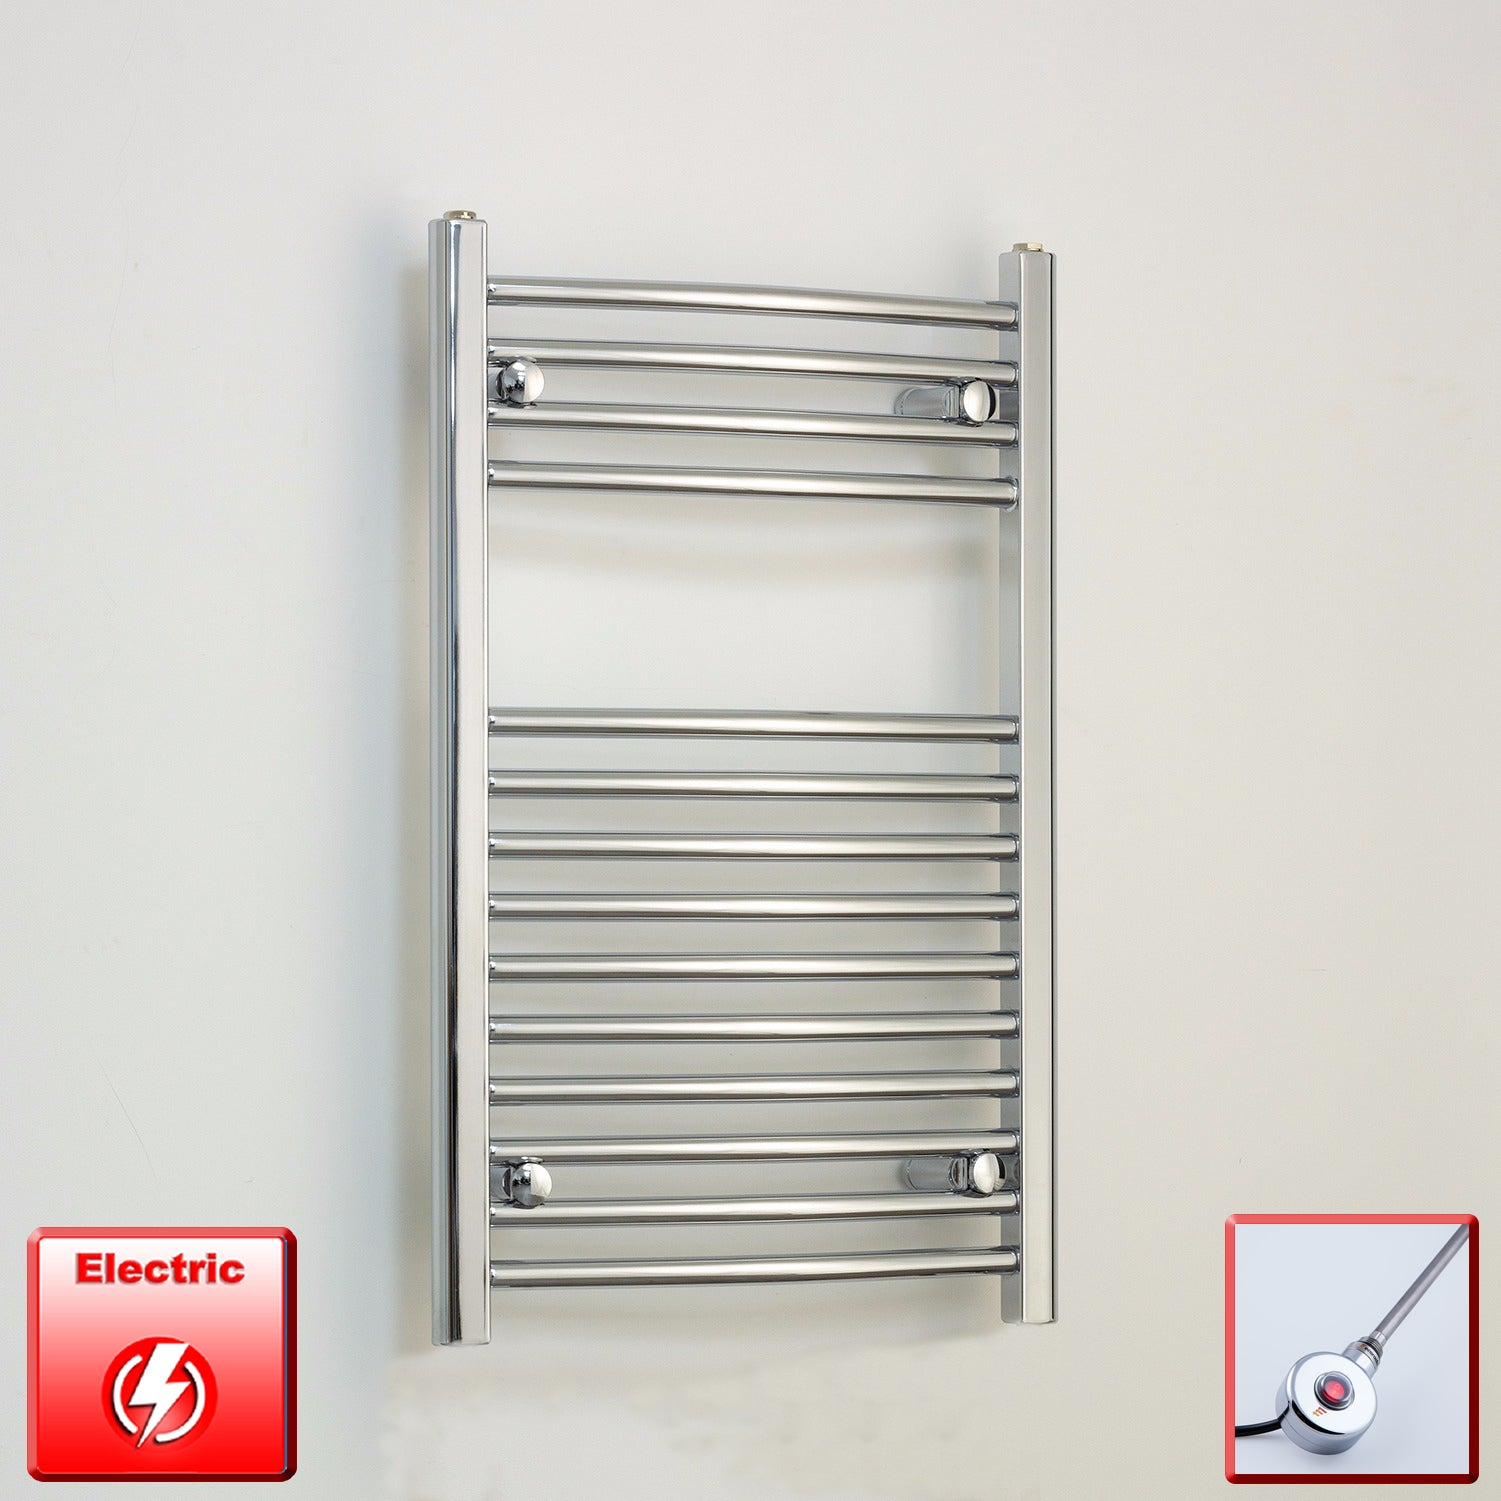 500mm Wide 800mm High Pre-Filled Chrome Electric Towel Rail Radiator With Ecoradco on off Single Heat Element